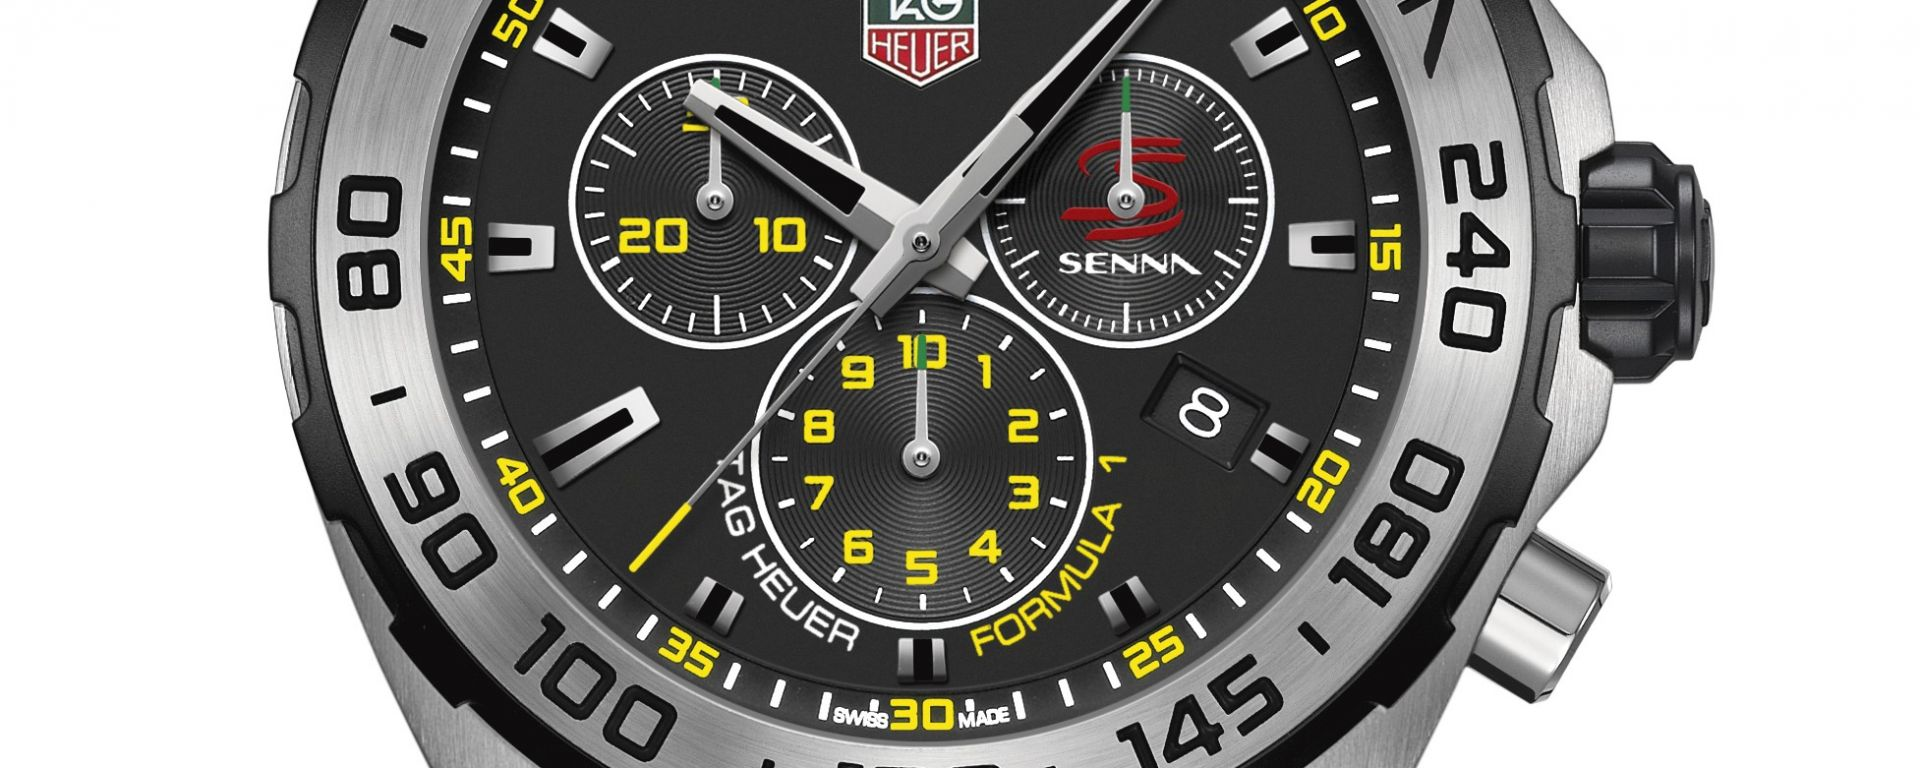 TAG Heuer Senna Special Edition